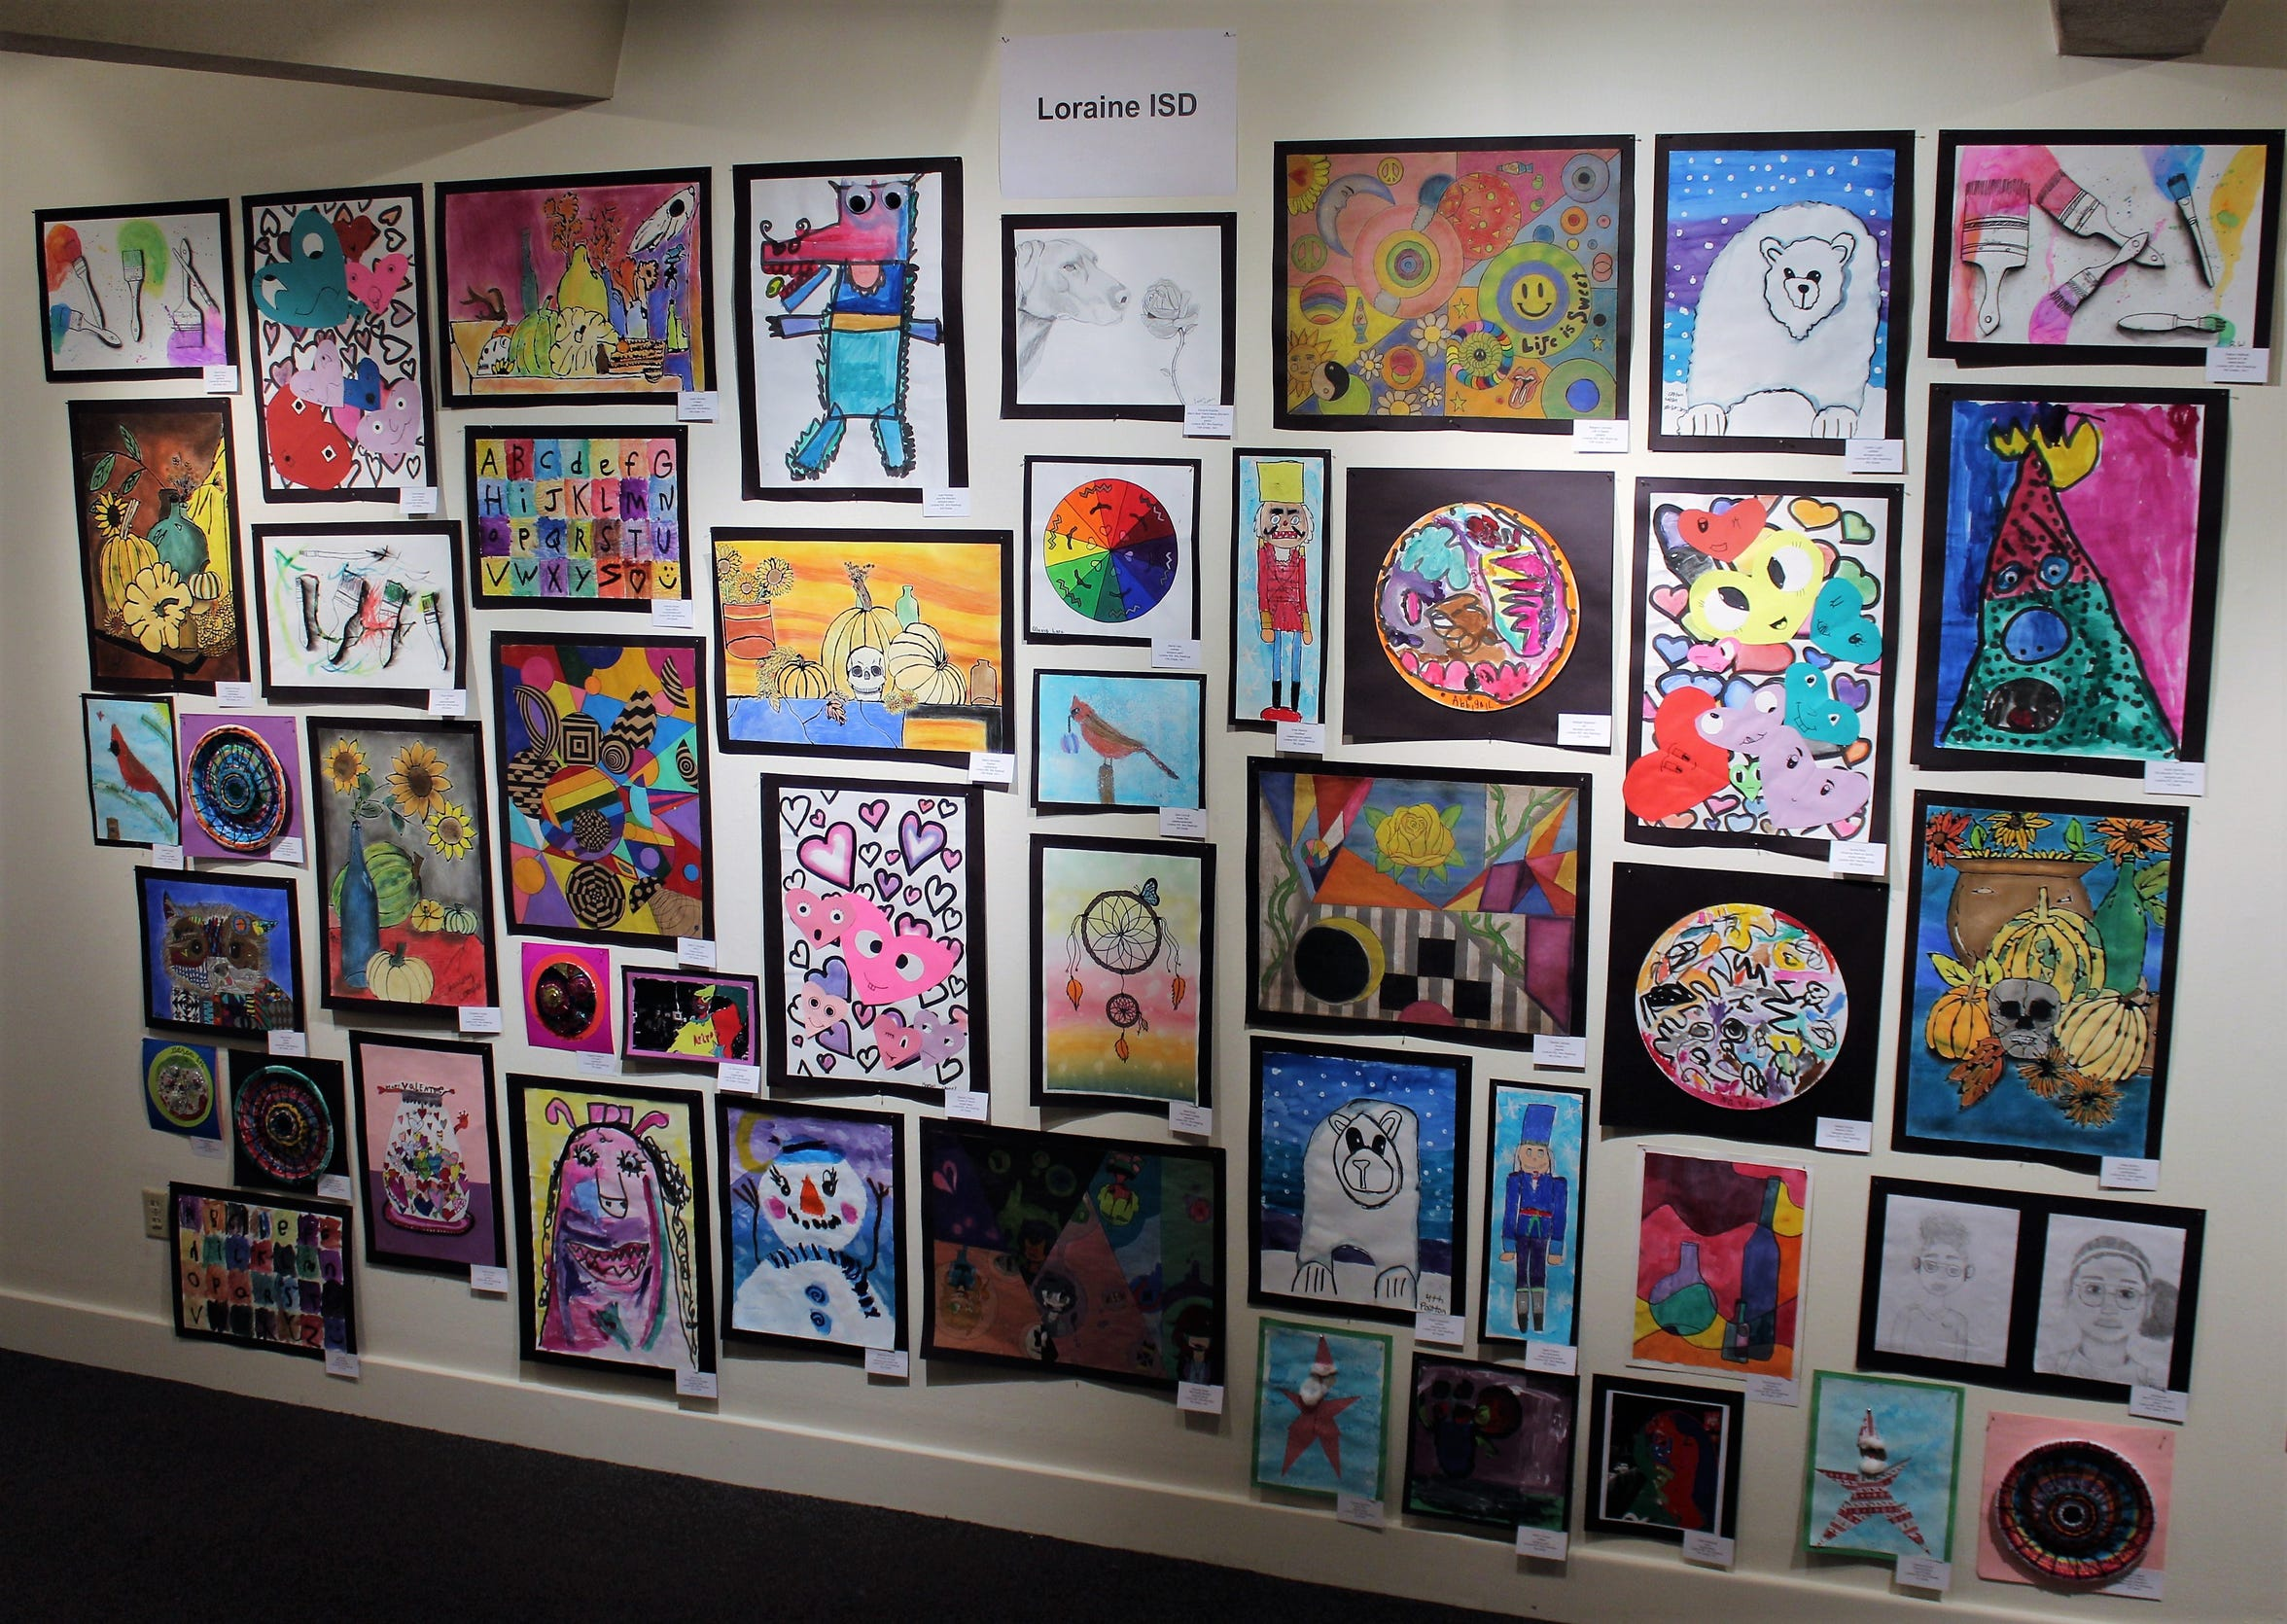 Artwork from the Loraine ISD fills a wall in the second floor gallery at The Grace Museum in Abilene.